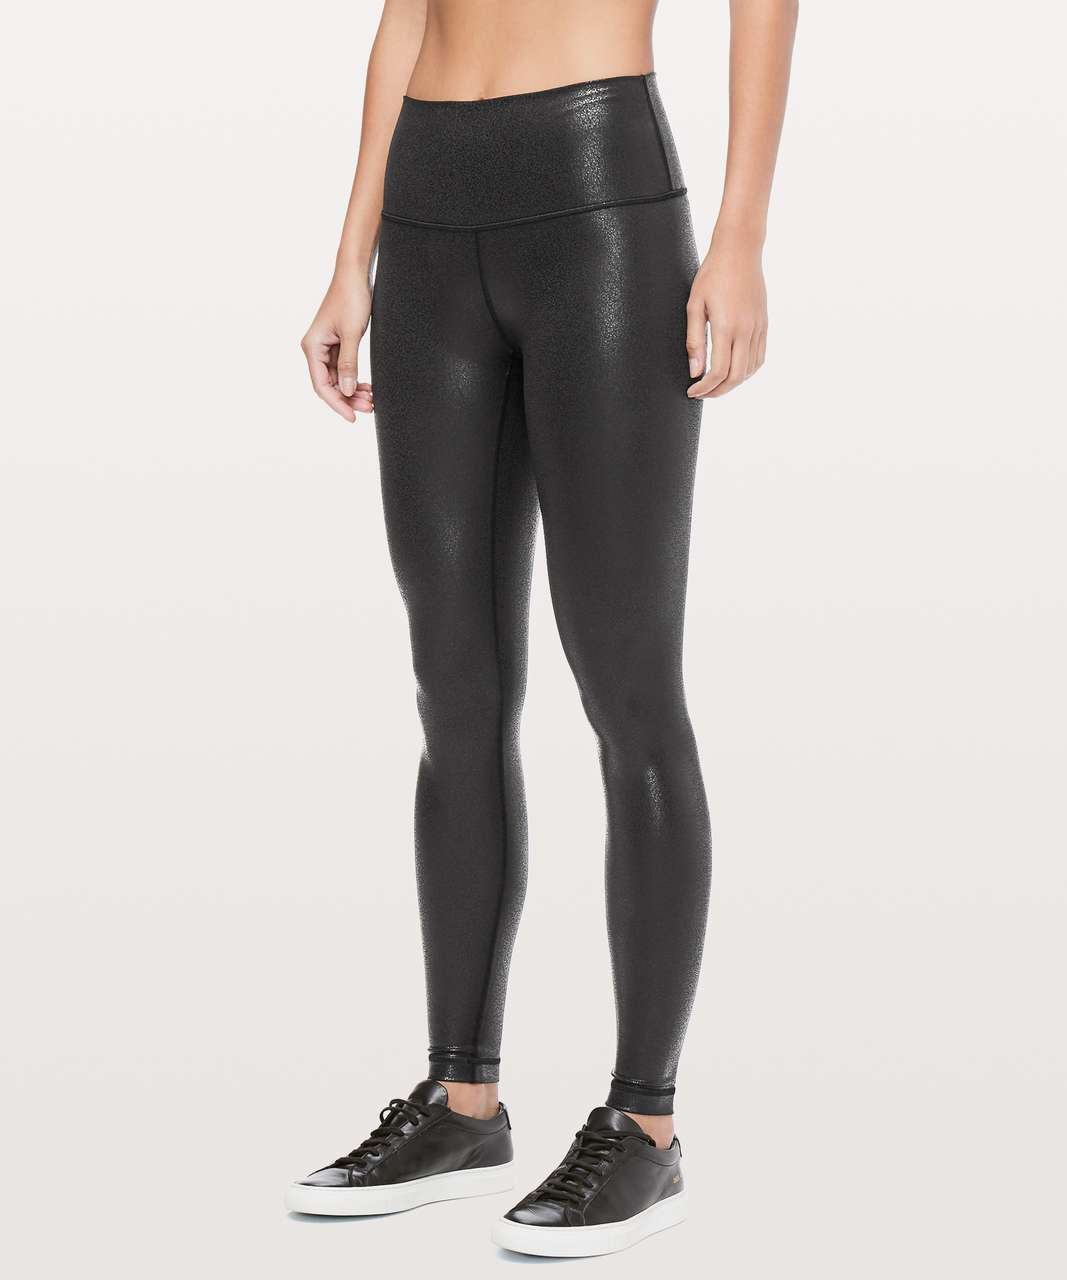 "Lululemon Wunder Under High-Rise Tight *Foil 28"" - Luminosity Foil Print Black Black"